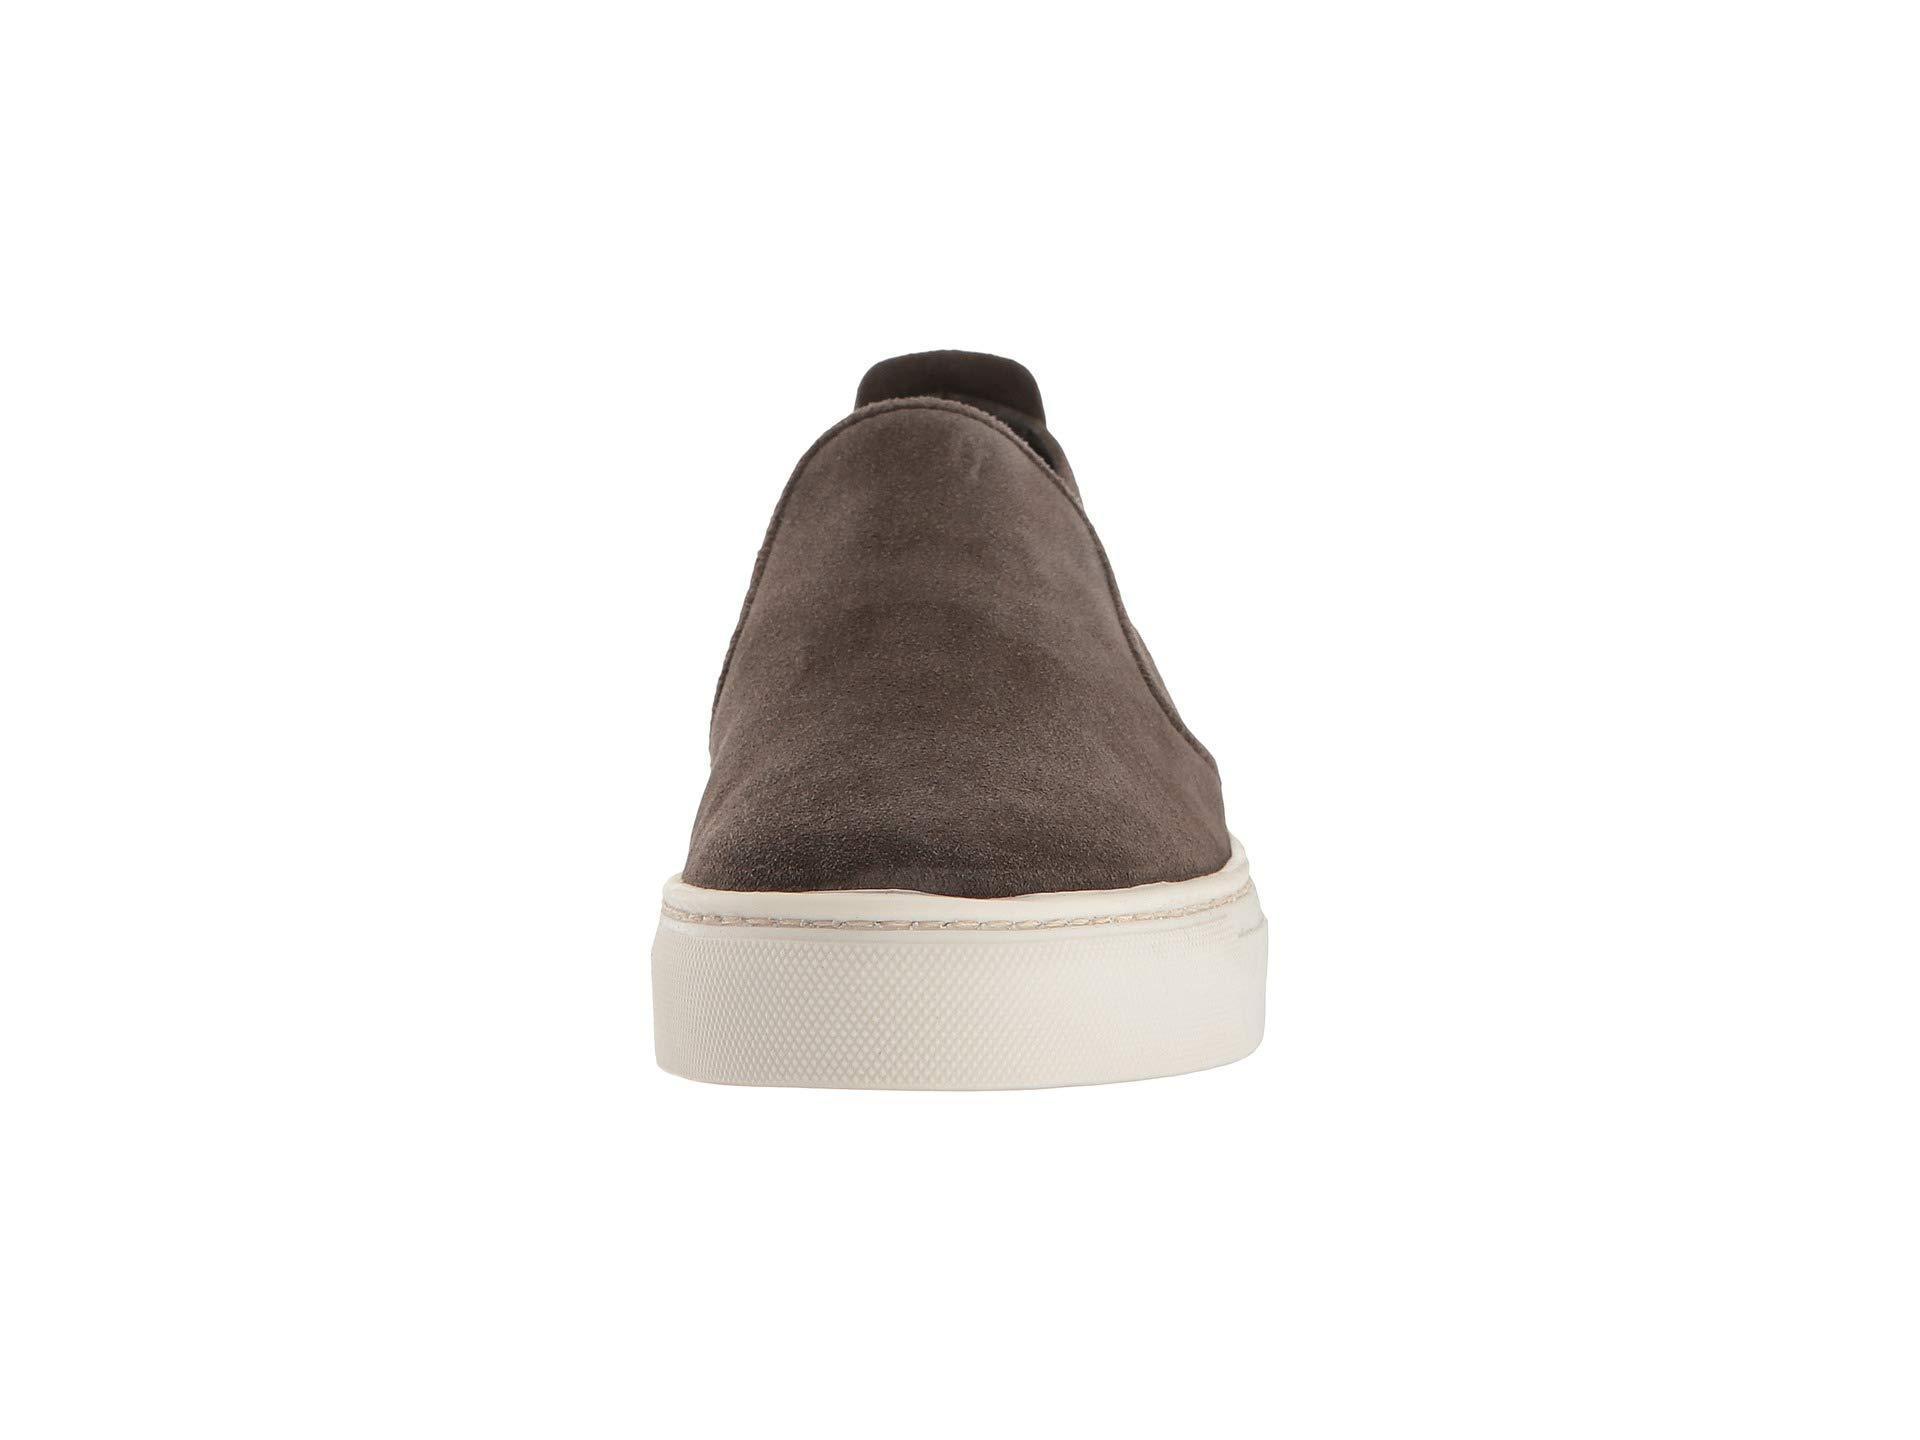 Fango Sneak Name The Flexx Suede wTBB1tq